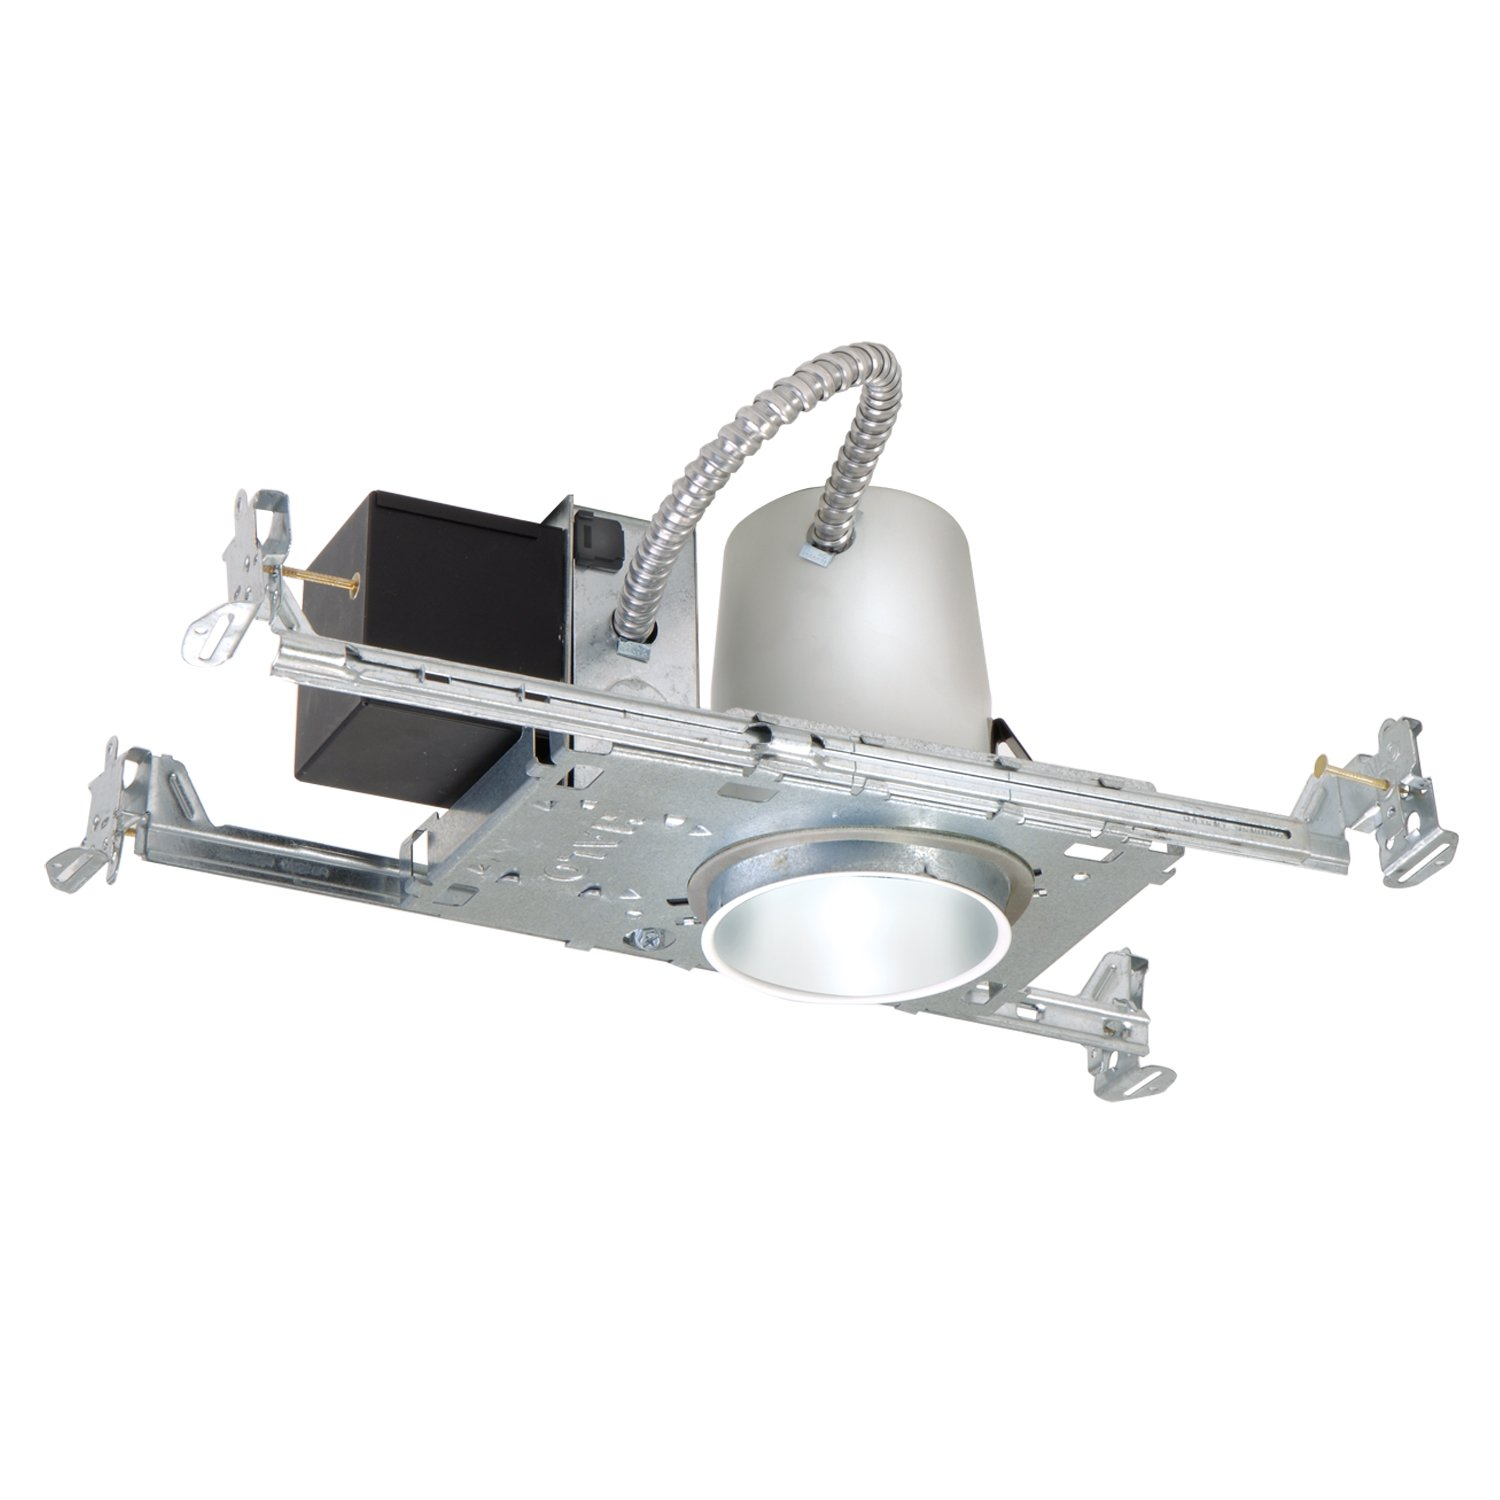 Halo Recessed H36LVTAT 3-Inch Housing Non-Ic Air-Tite Shallow Ceiling 12-Volt Low Voltage